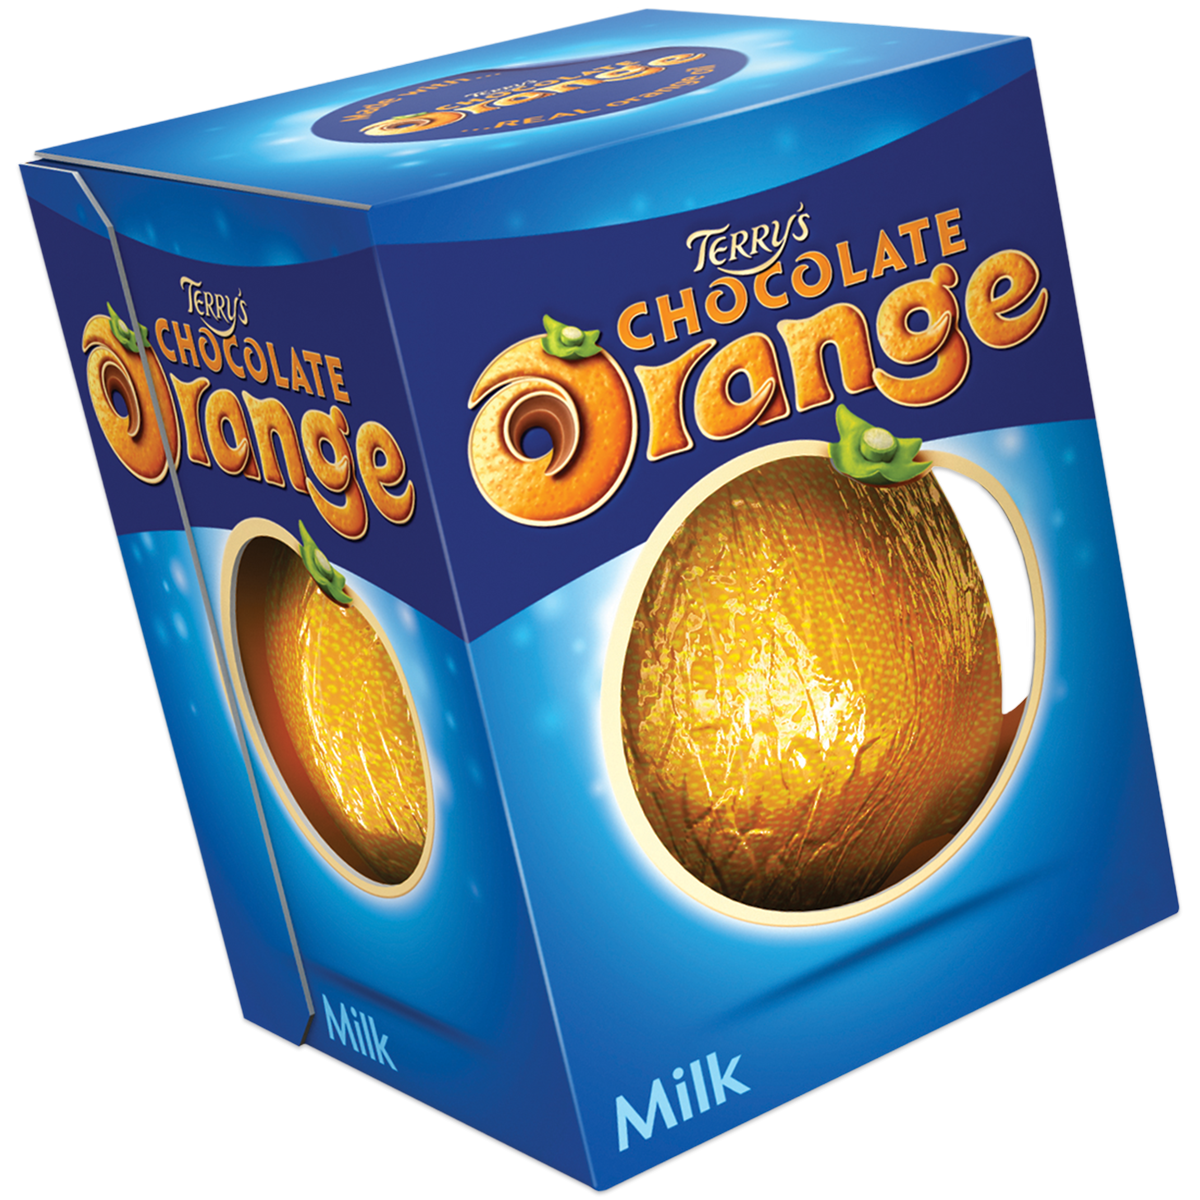 Above: It's a Terry's Chocolate Orange that hits the spot for Lizzie!